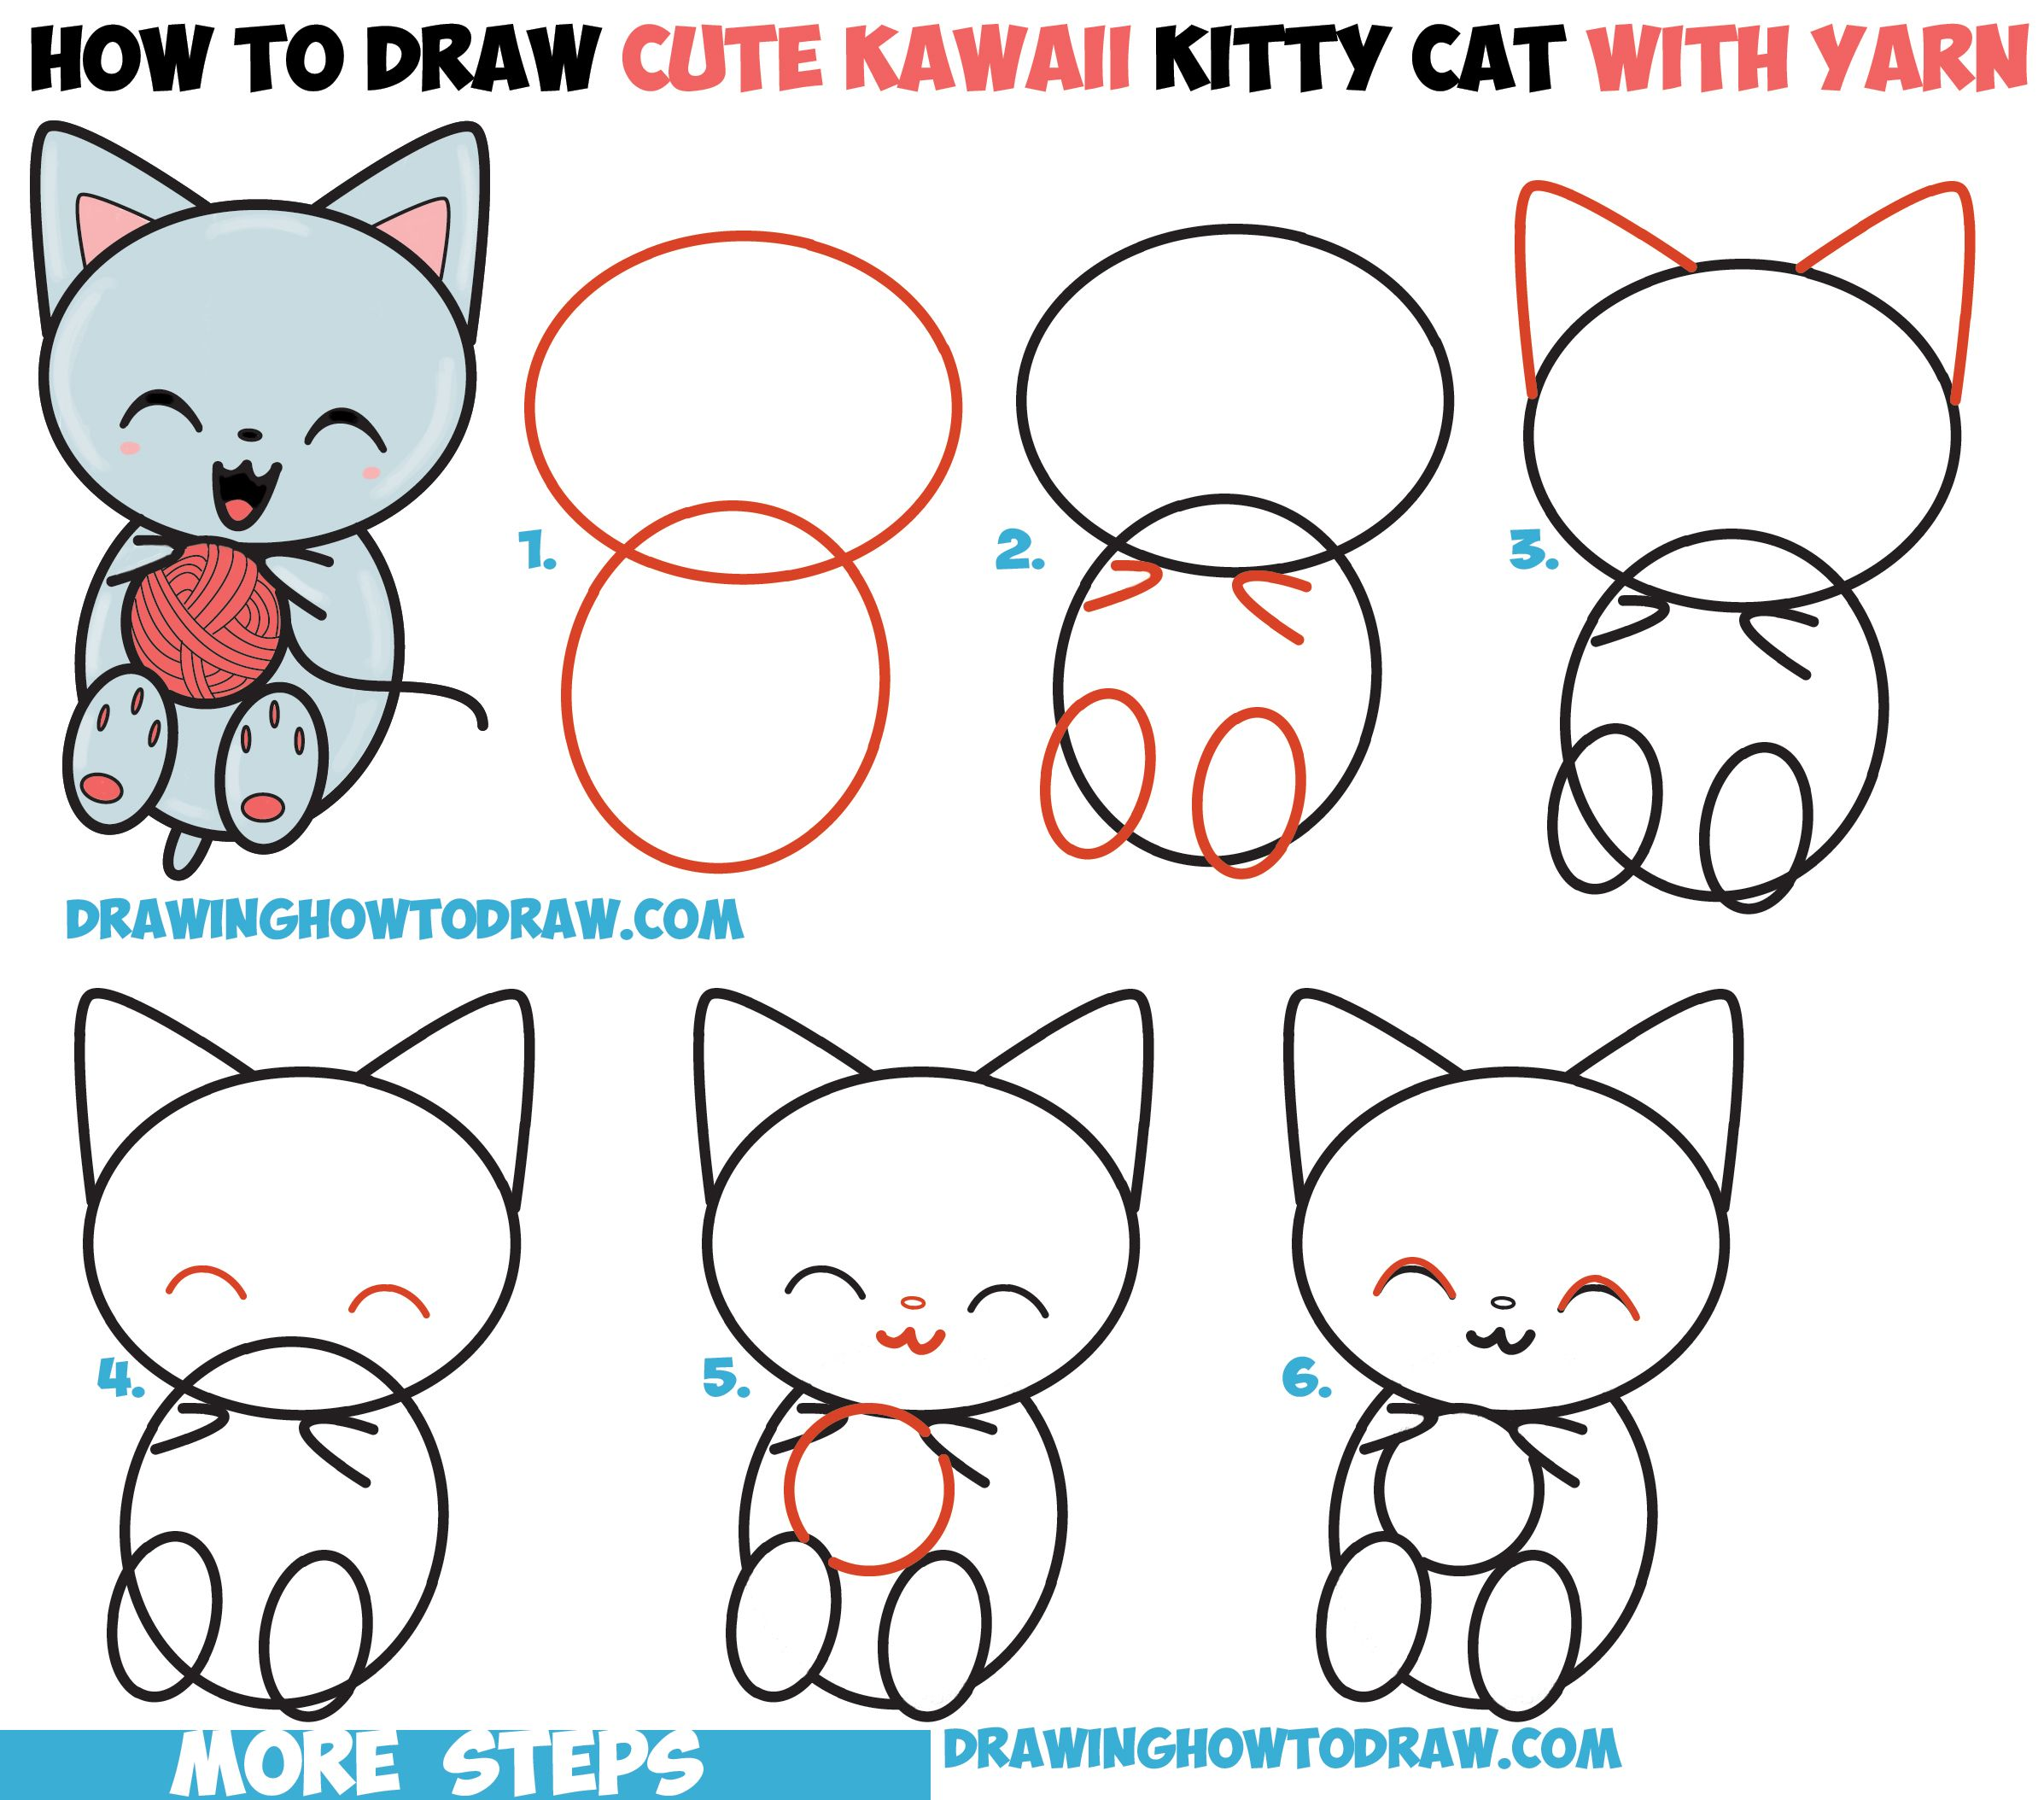 Uncategorized Steps To Draw A Cat how to draw cute kawaii kitten cat playing with yarn easy step by drawing